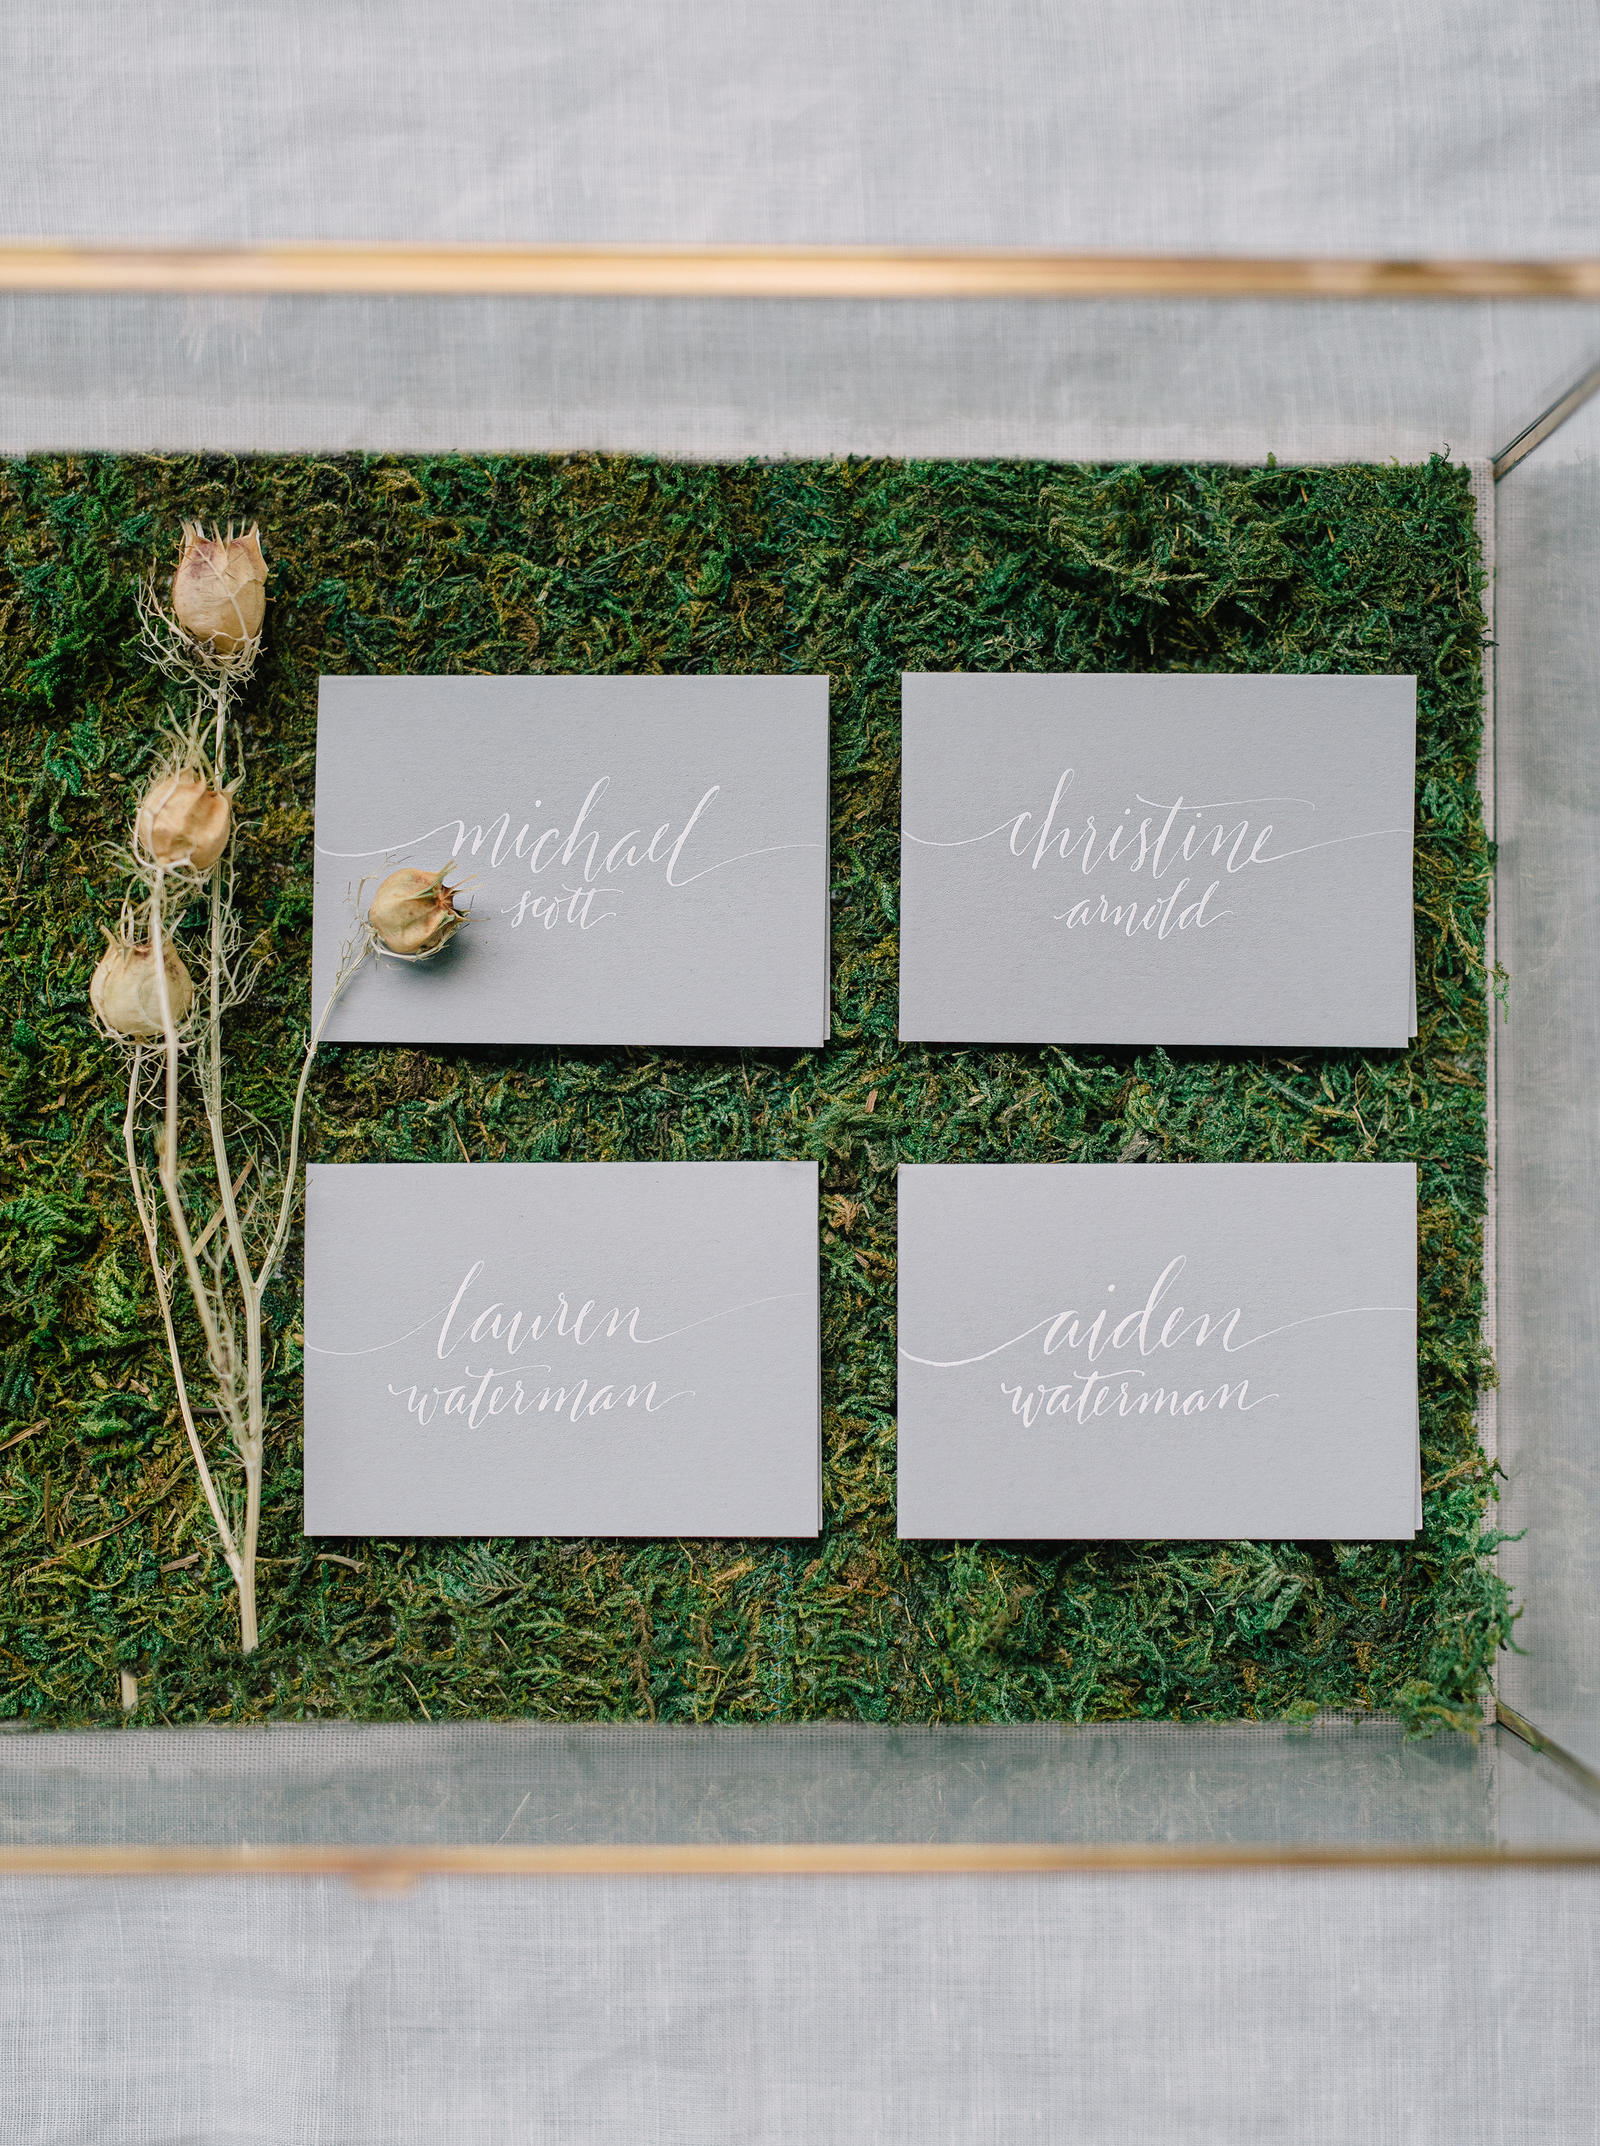 Editorial Photography | Atlanta, GA | Four namecards neatly arranged on a bed of moss.